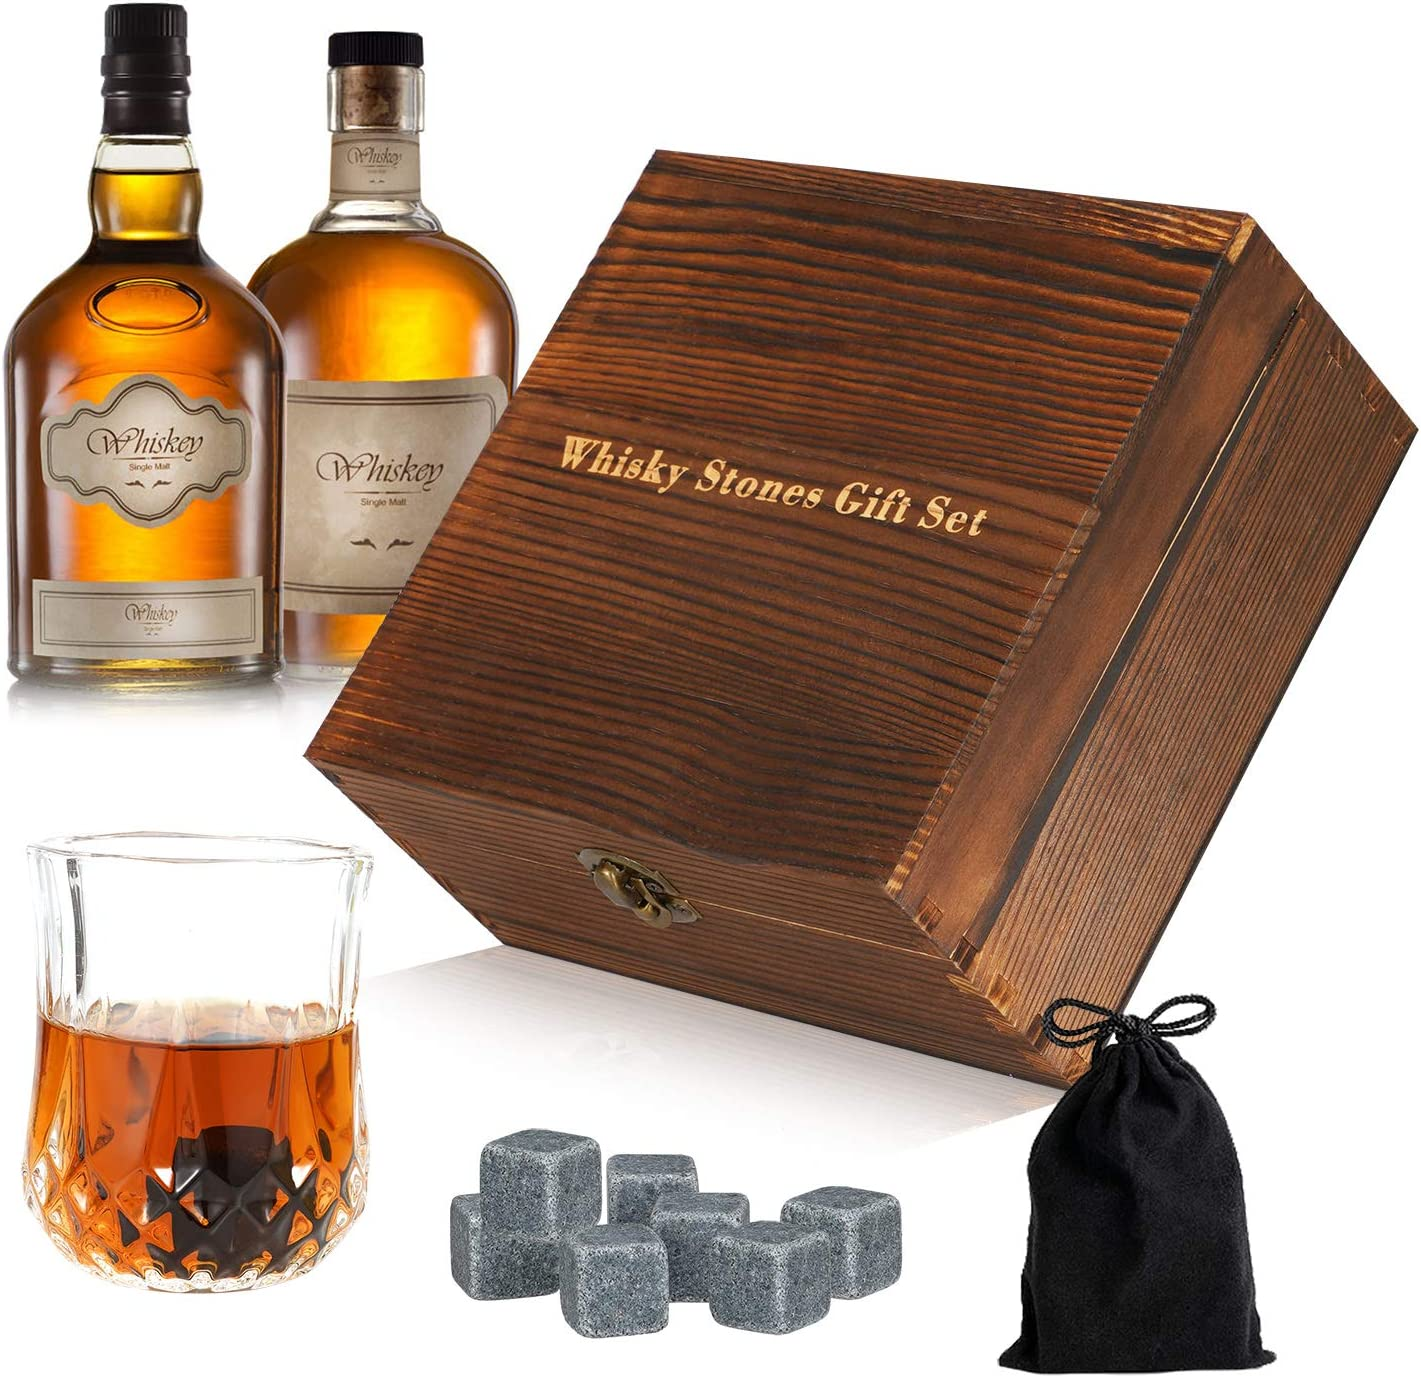 Widousy Stones Gift Set - Heavy Base Glasses For Scotch Bourbon Drinker- Whisky Rocks Chilling Stones in Wooden Gift Box - Burbon Gift Set for Men - Ideal for Birthday, Anniversary, Fathers Day